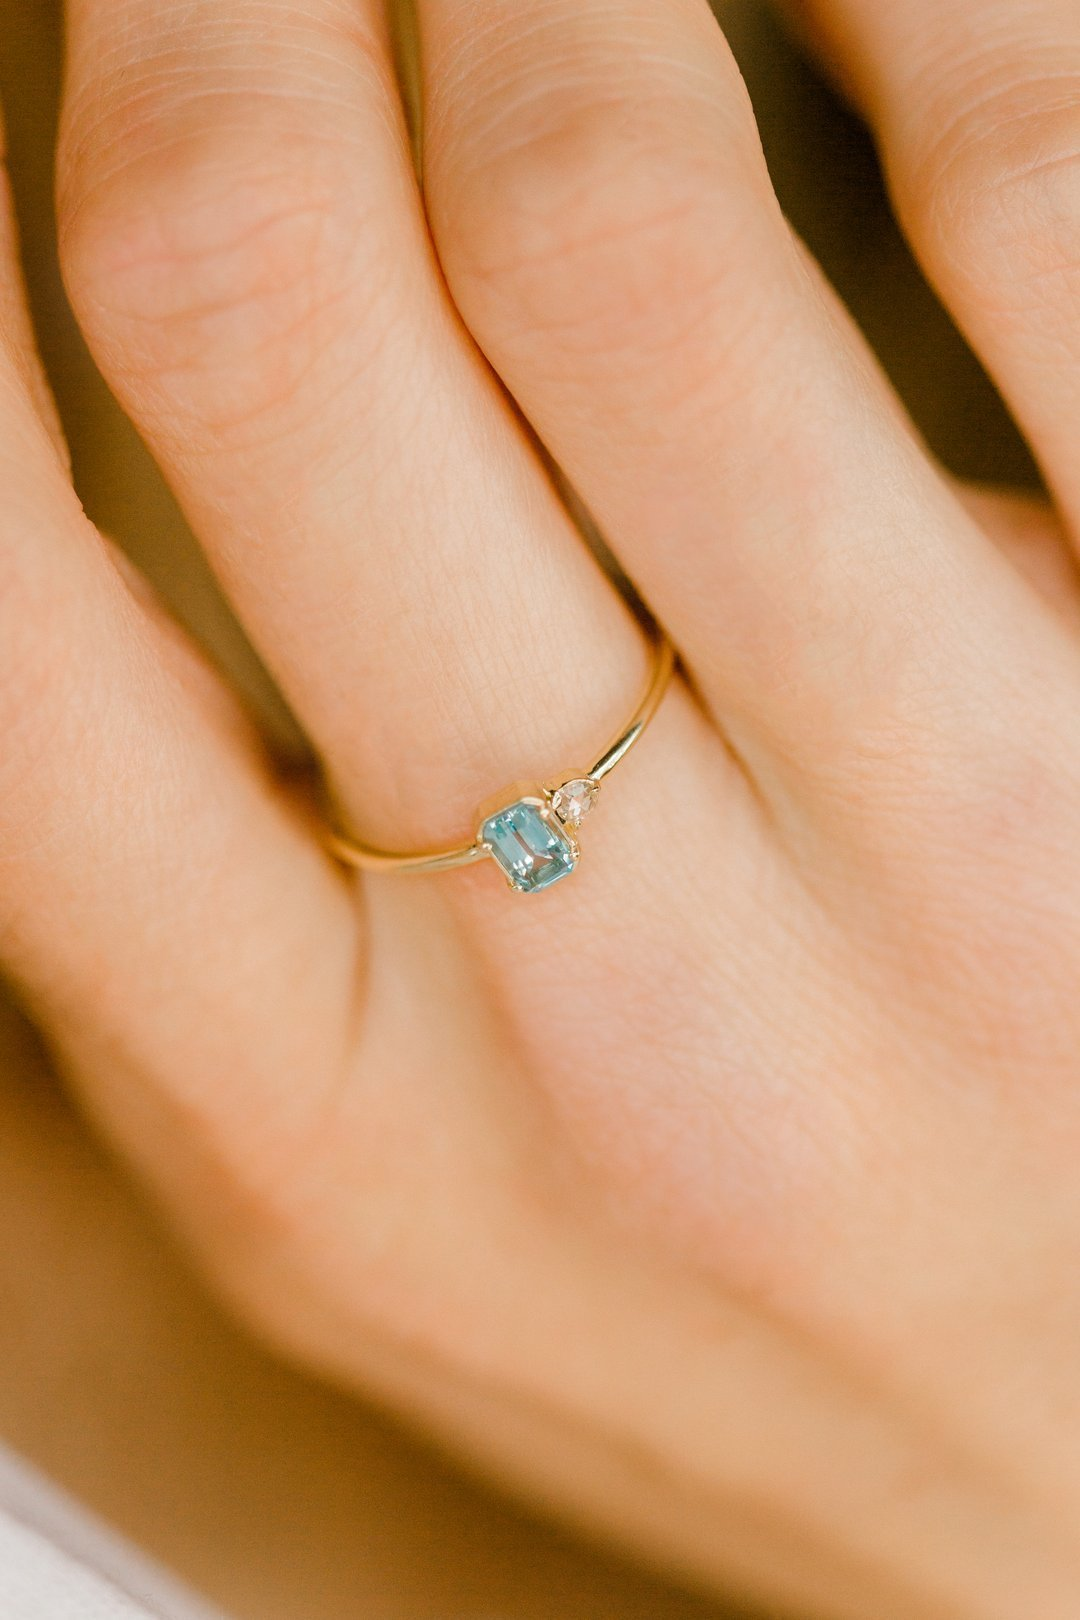 Delicate Aquamarine Art Deco Ring